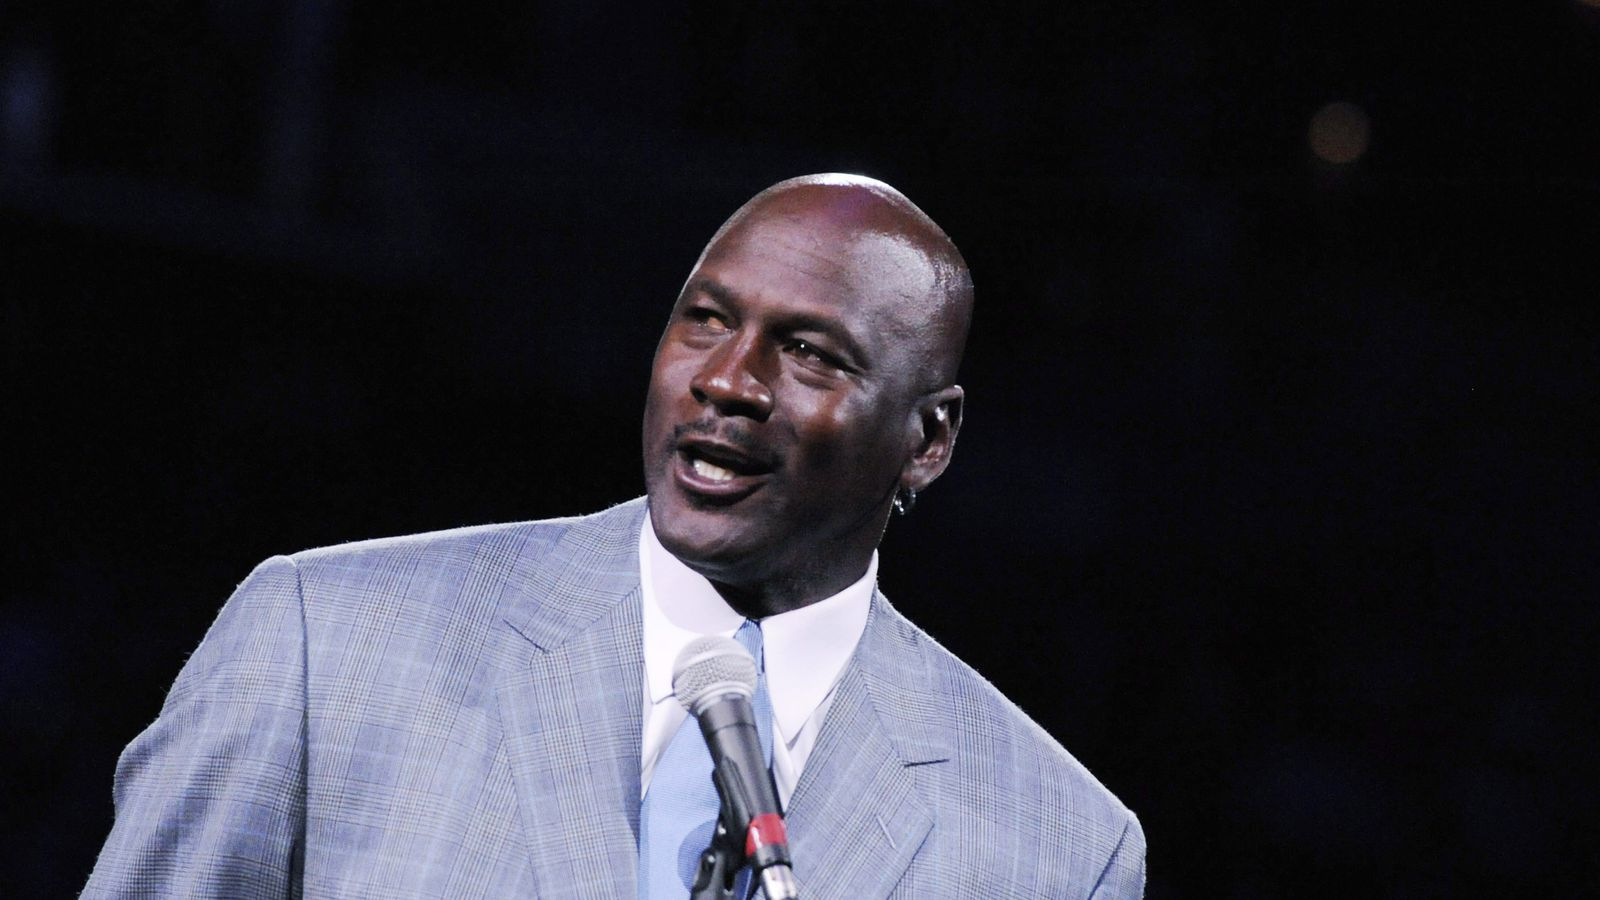 who influenced michael jordan to become the player and person he is today Michael jordan hated losing so much that he willed to win every game he played against any player that stood his way his father often marveled how his son outdid other players without them knowing that he was doing that with himself.